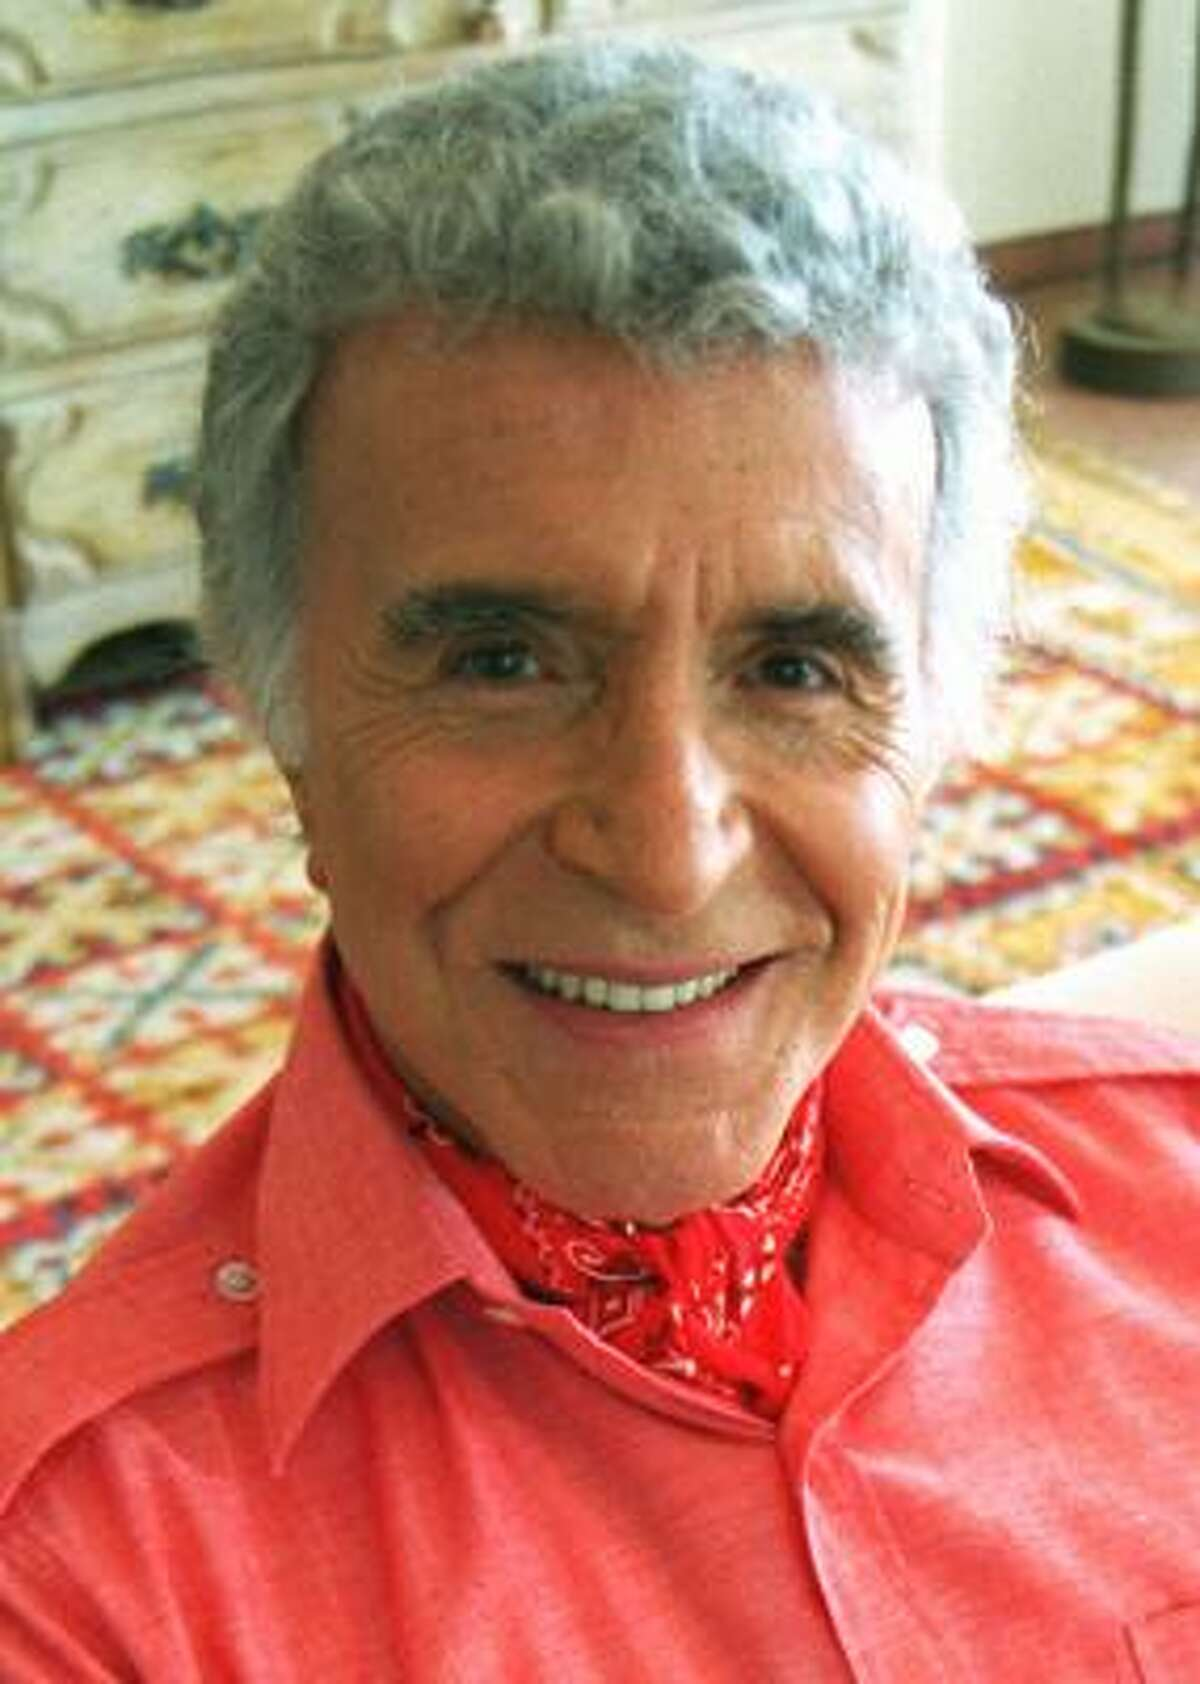 Ricardo Montalban was a mexican TV, theater and film actor.